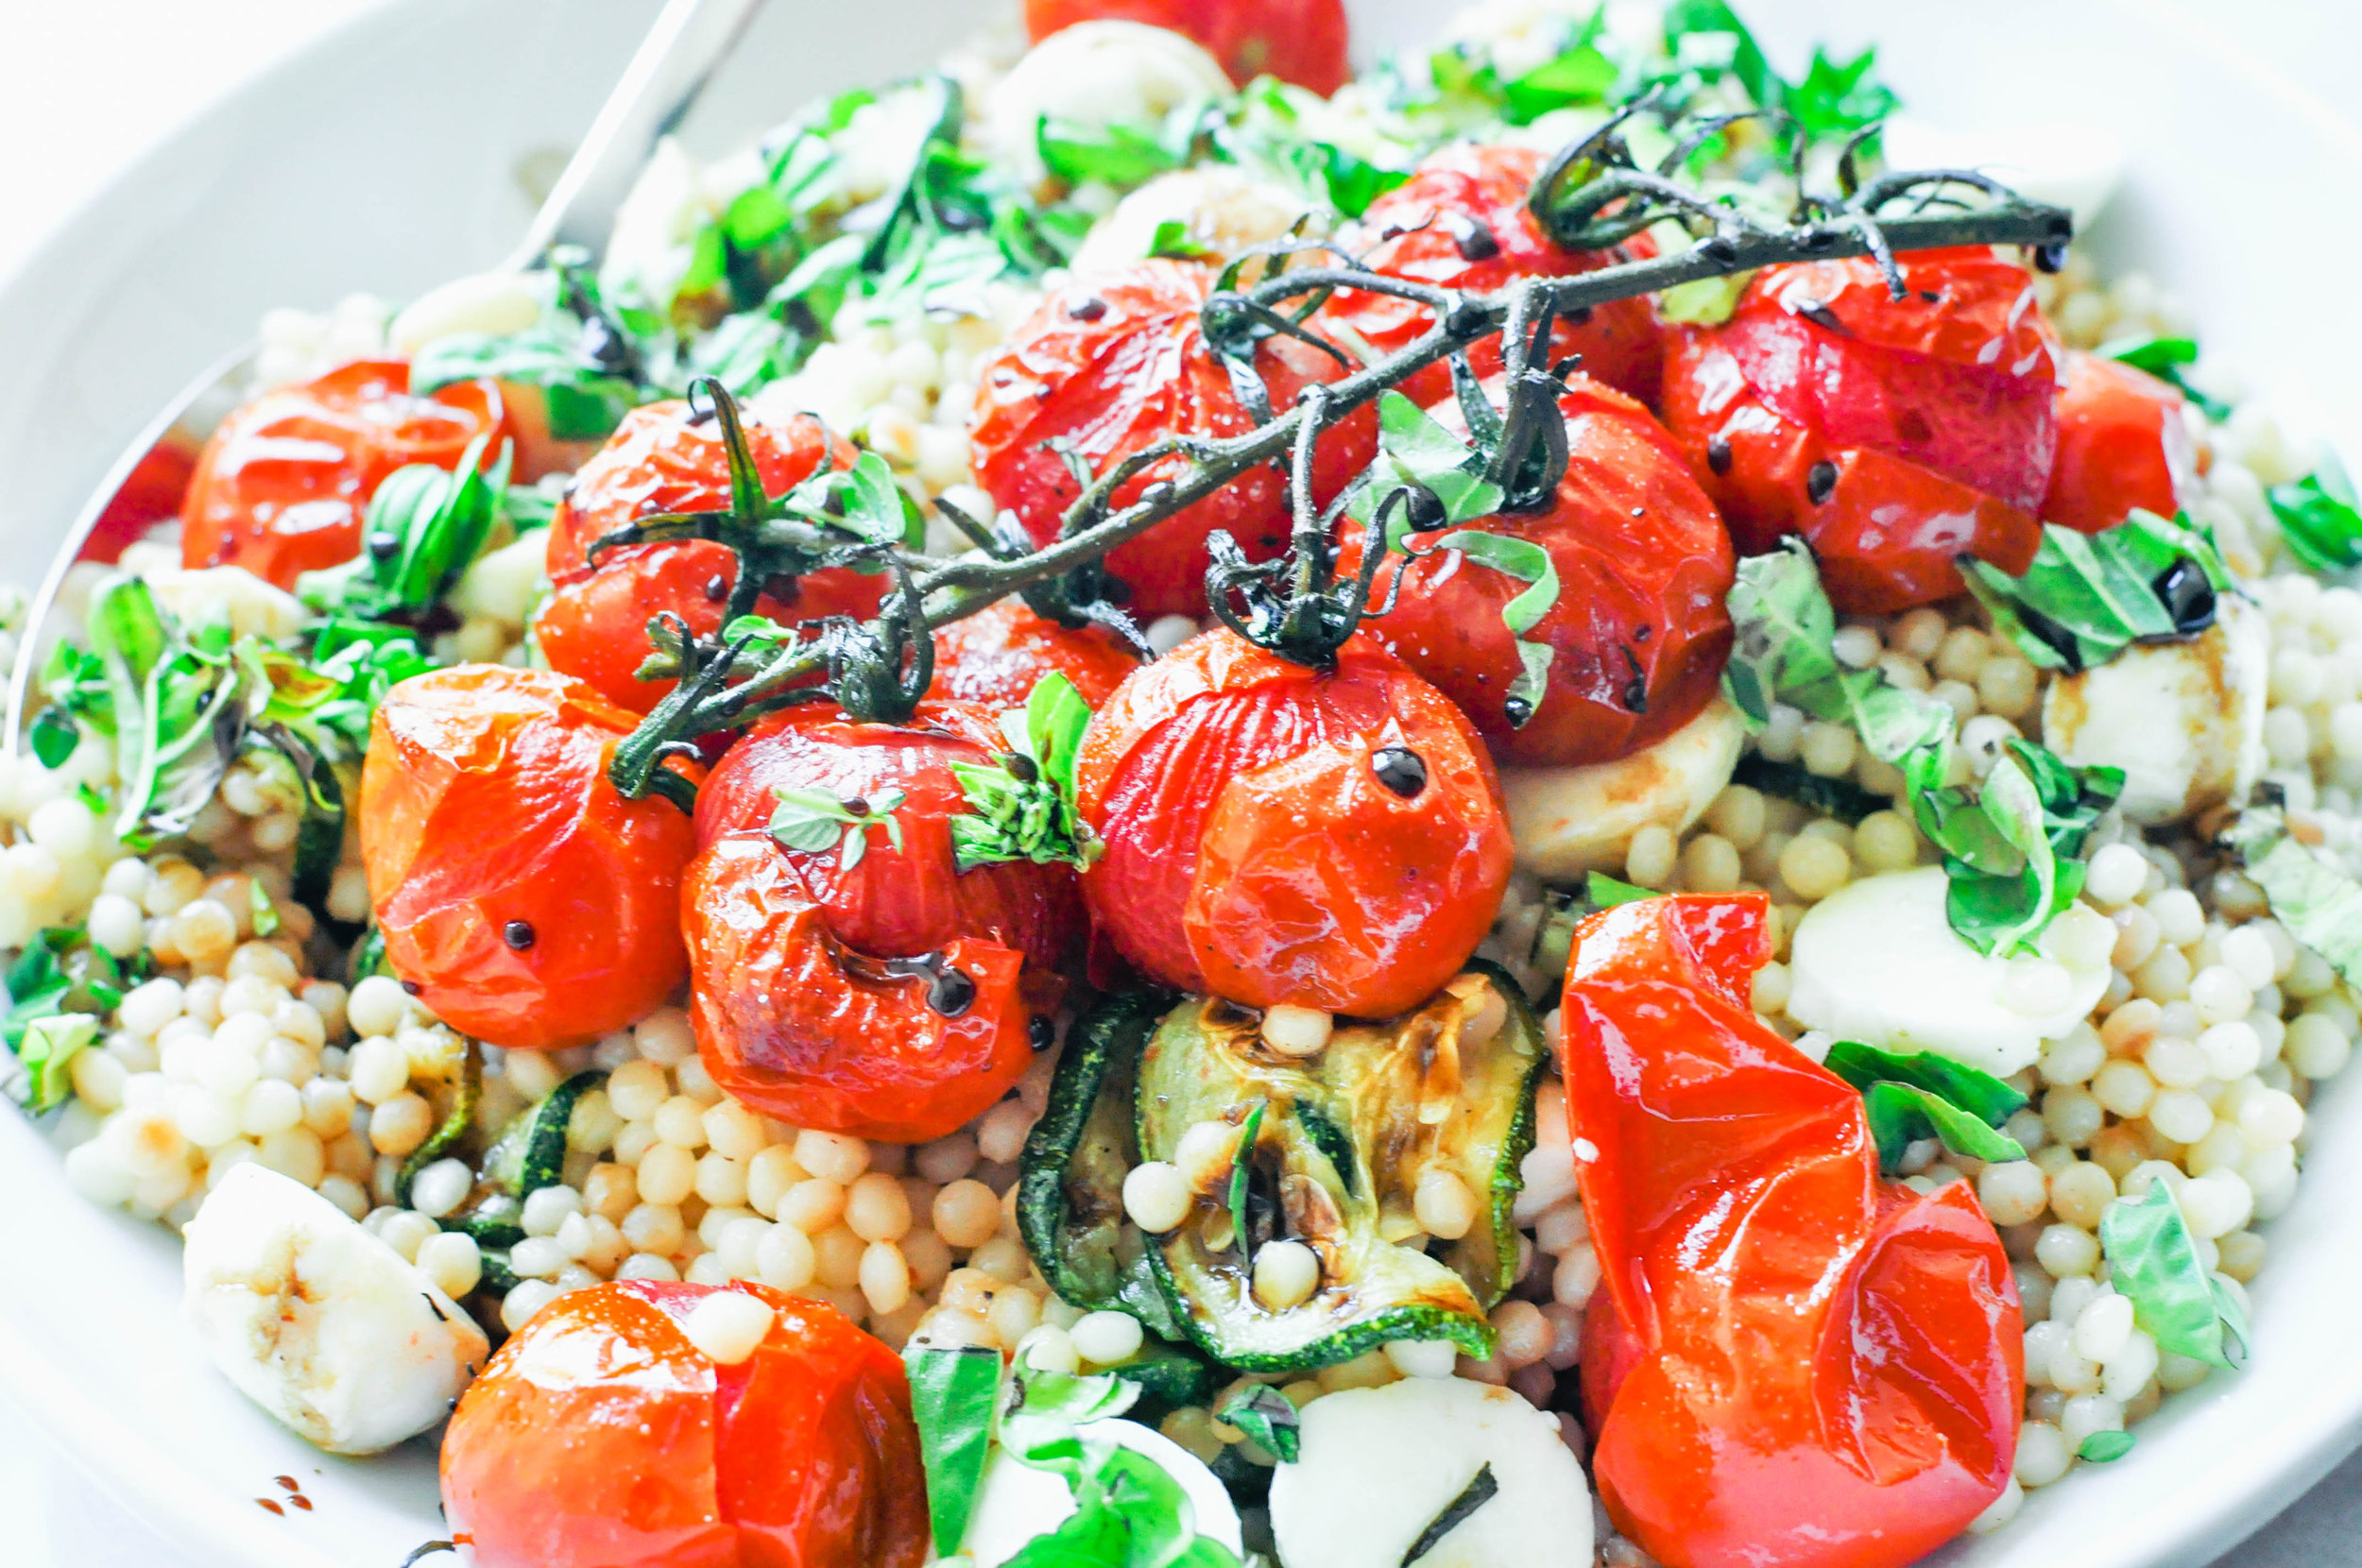 Israeli Couscous Salad with Zucchini, Mozzarella, and Tomatoes | This Healthy Table